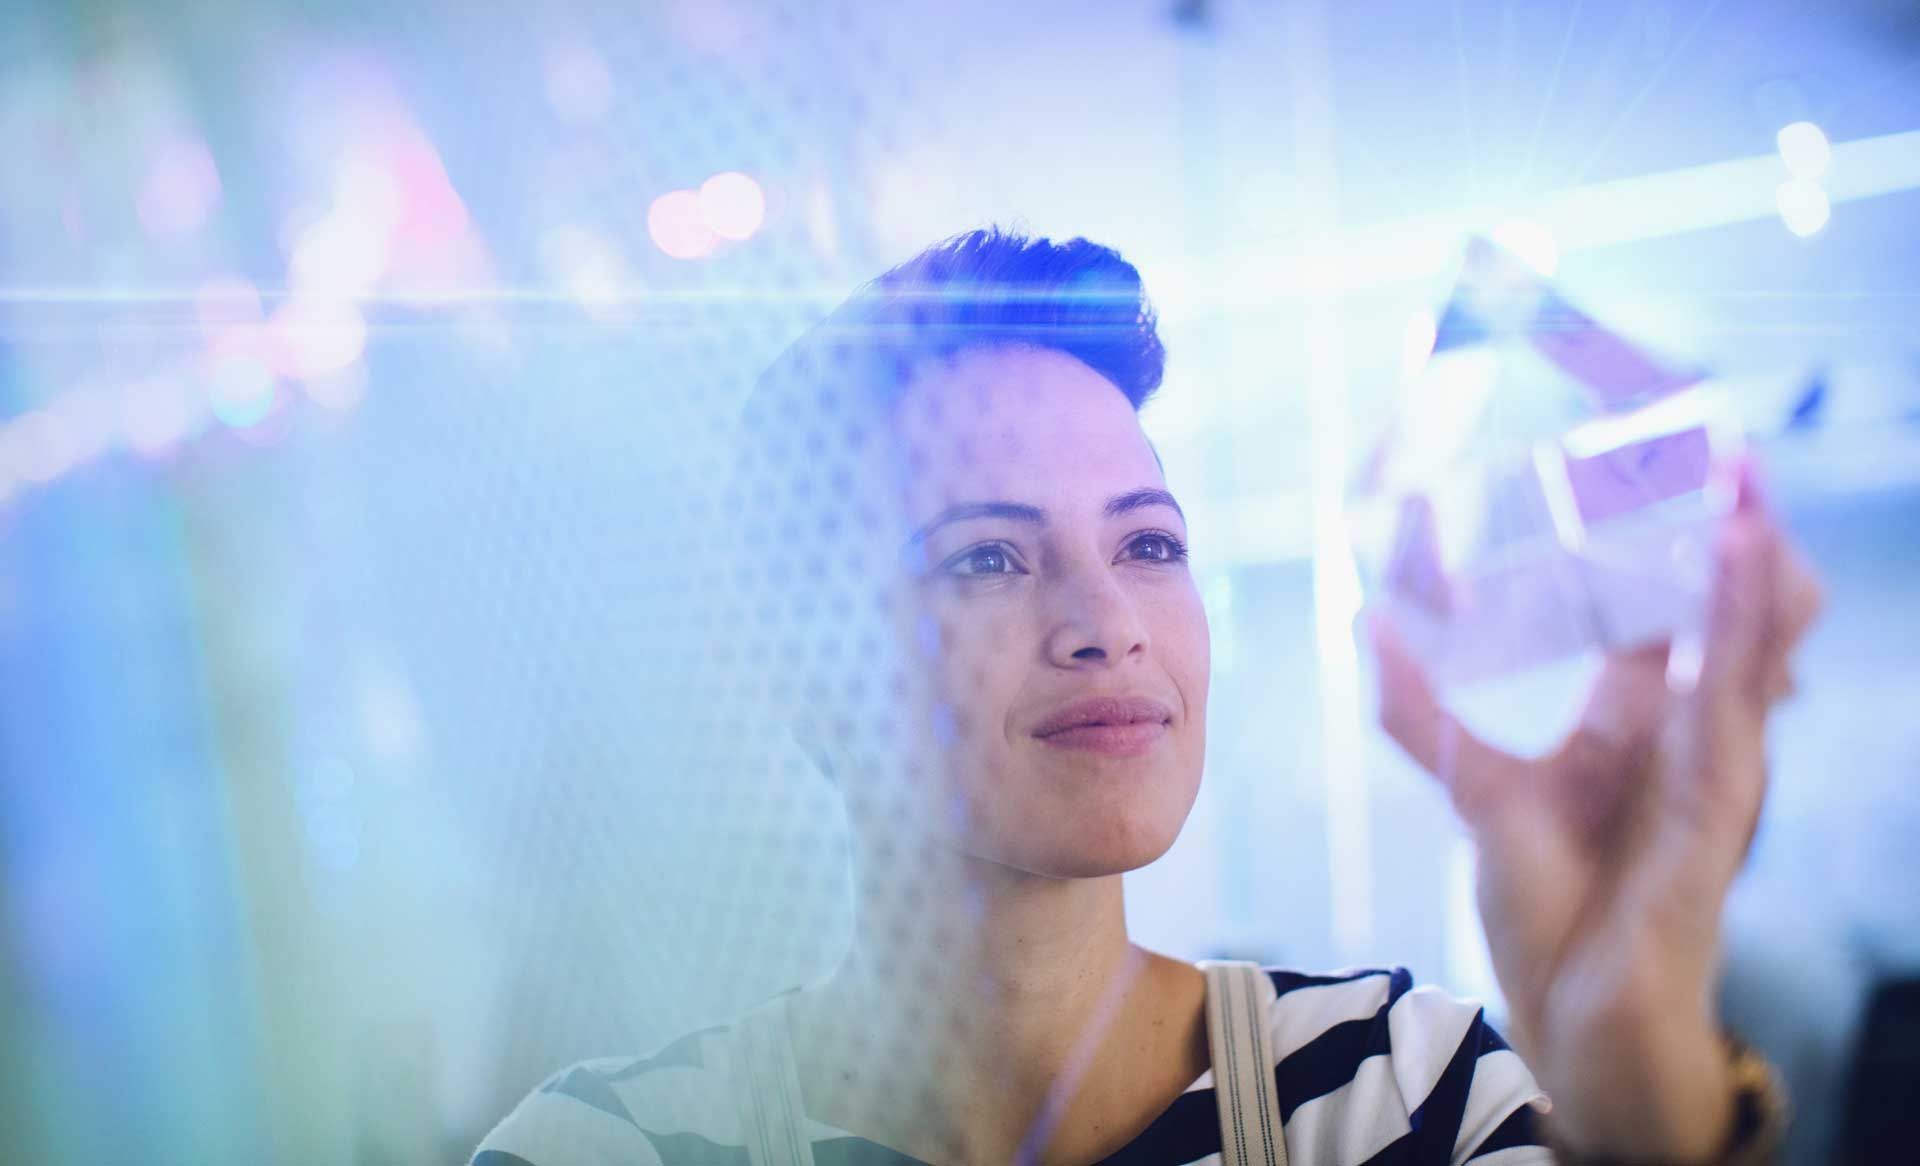 A woman inspecting a glass prism